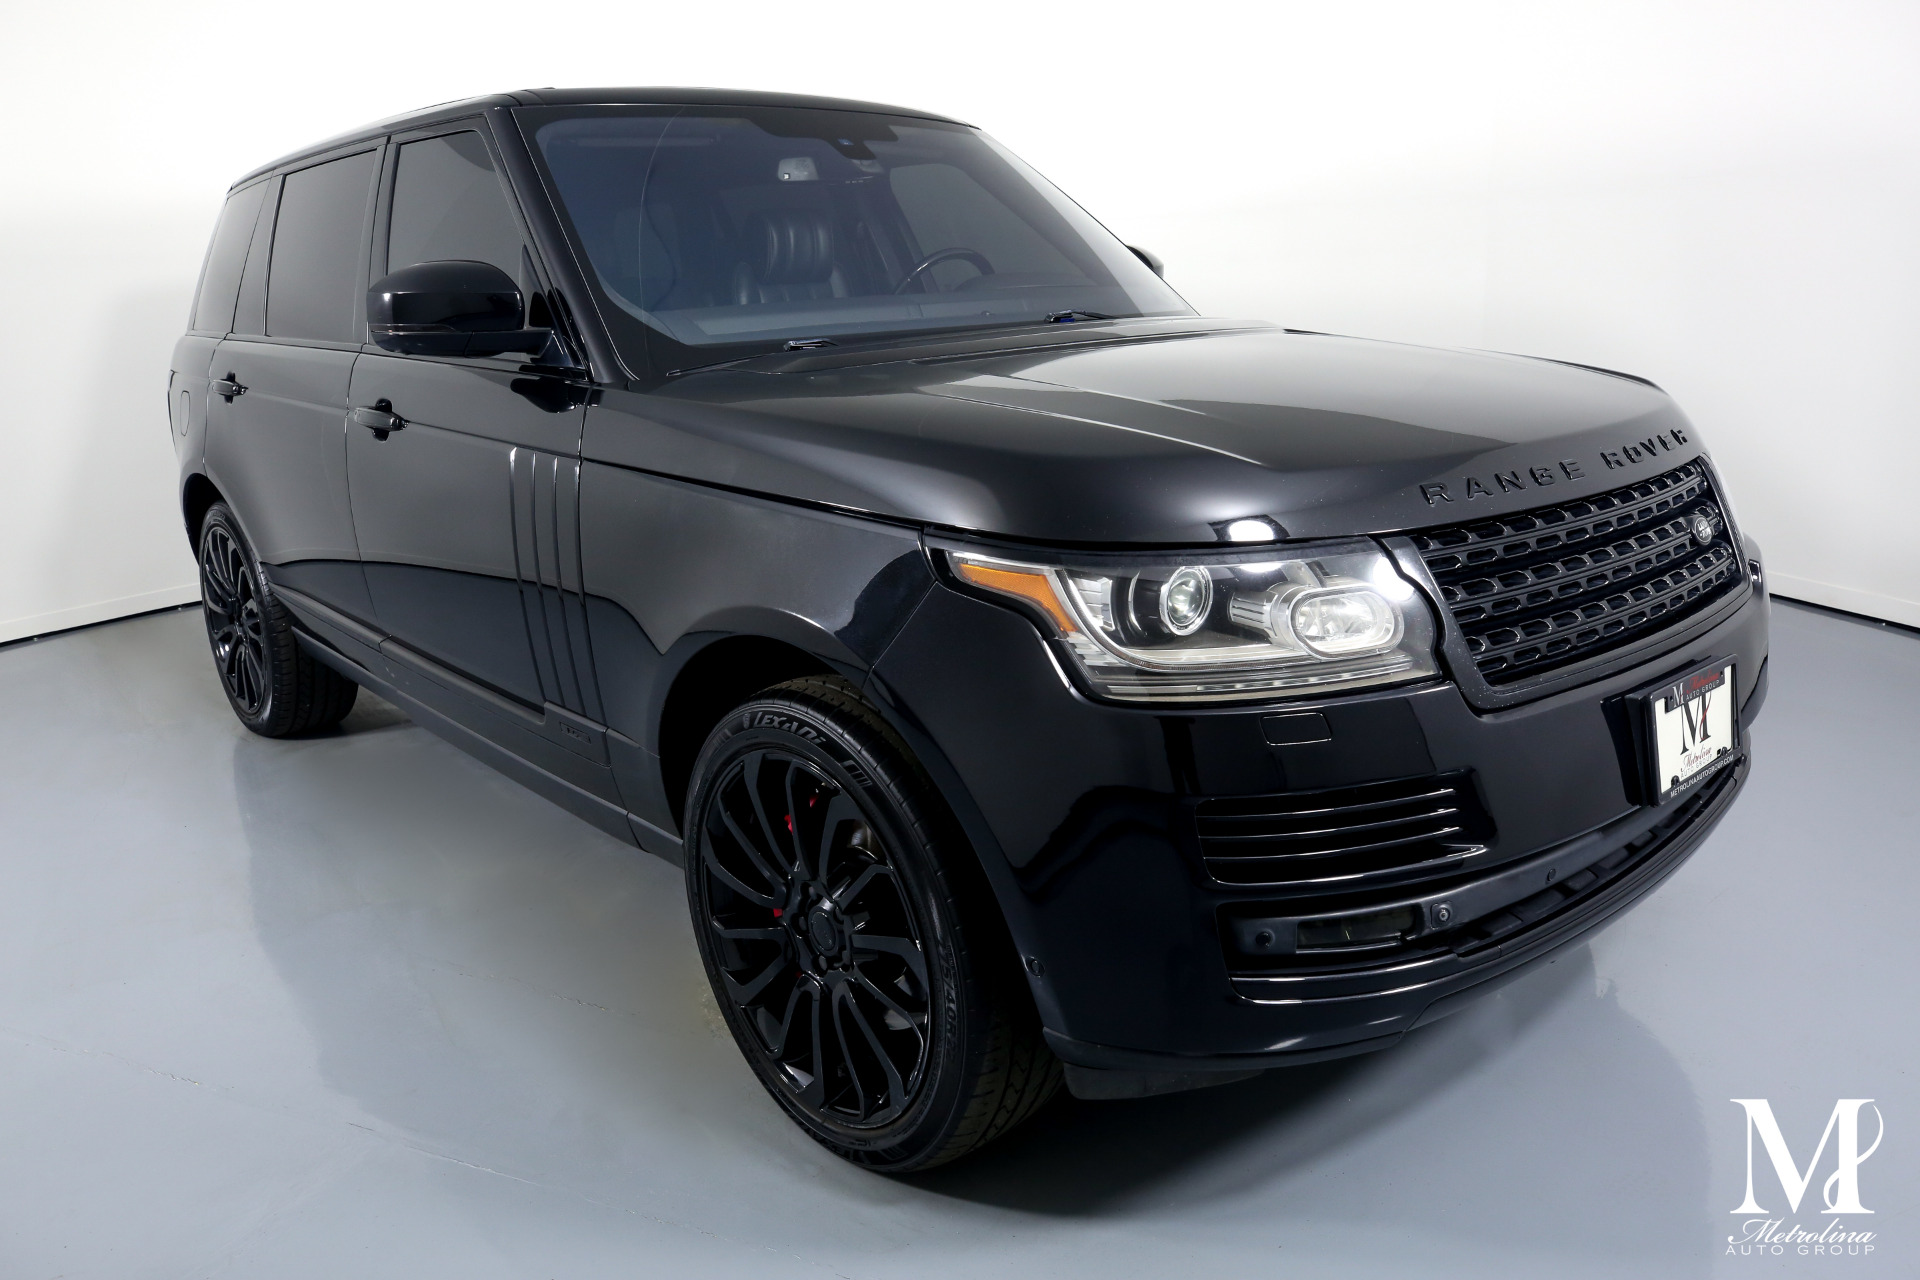 Used 2015 Land Rover Range Rover Autobiography LWB for sale $49,996 at Metrolina Auto Group in Charlotte NC 28217 - 2